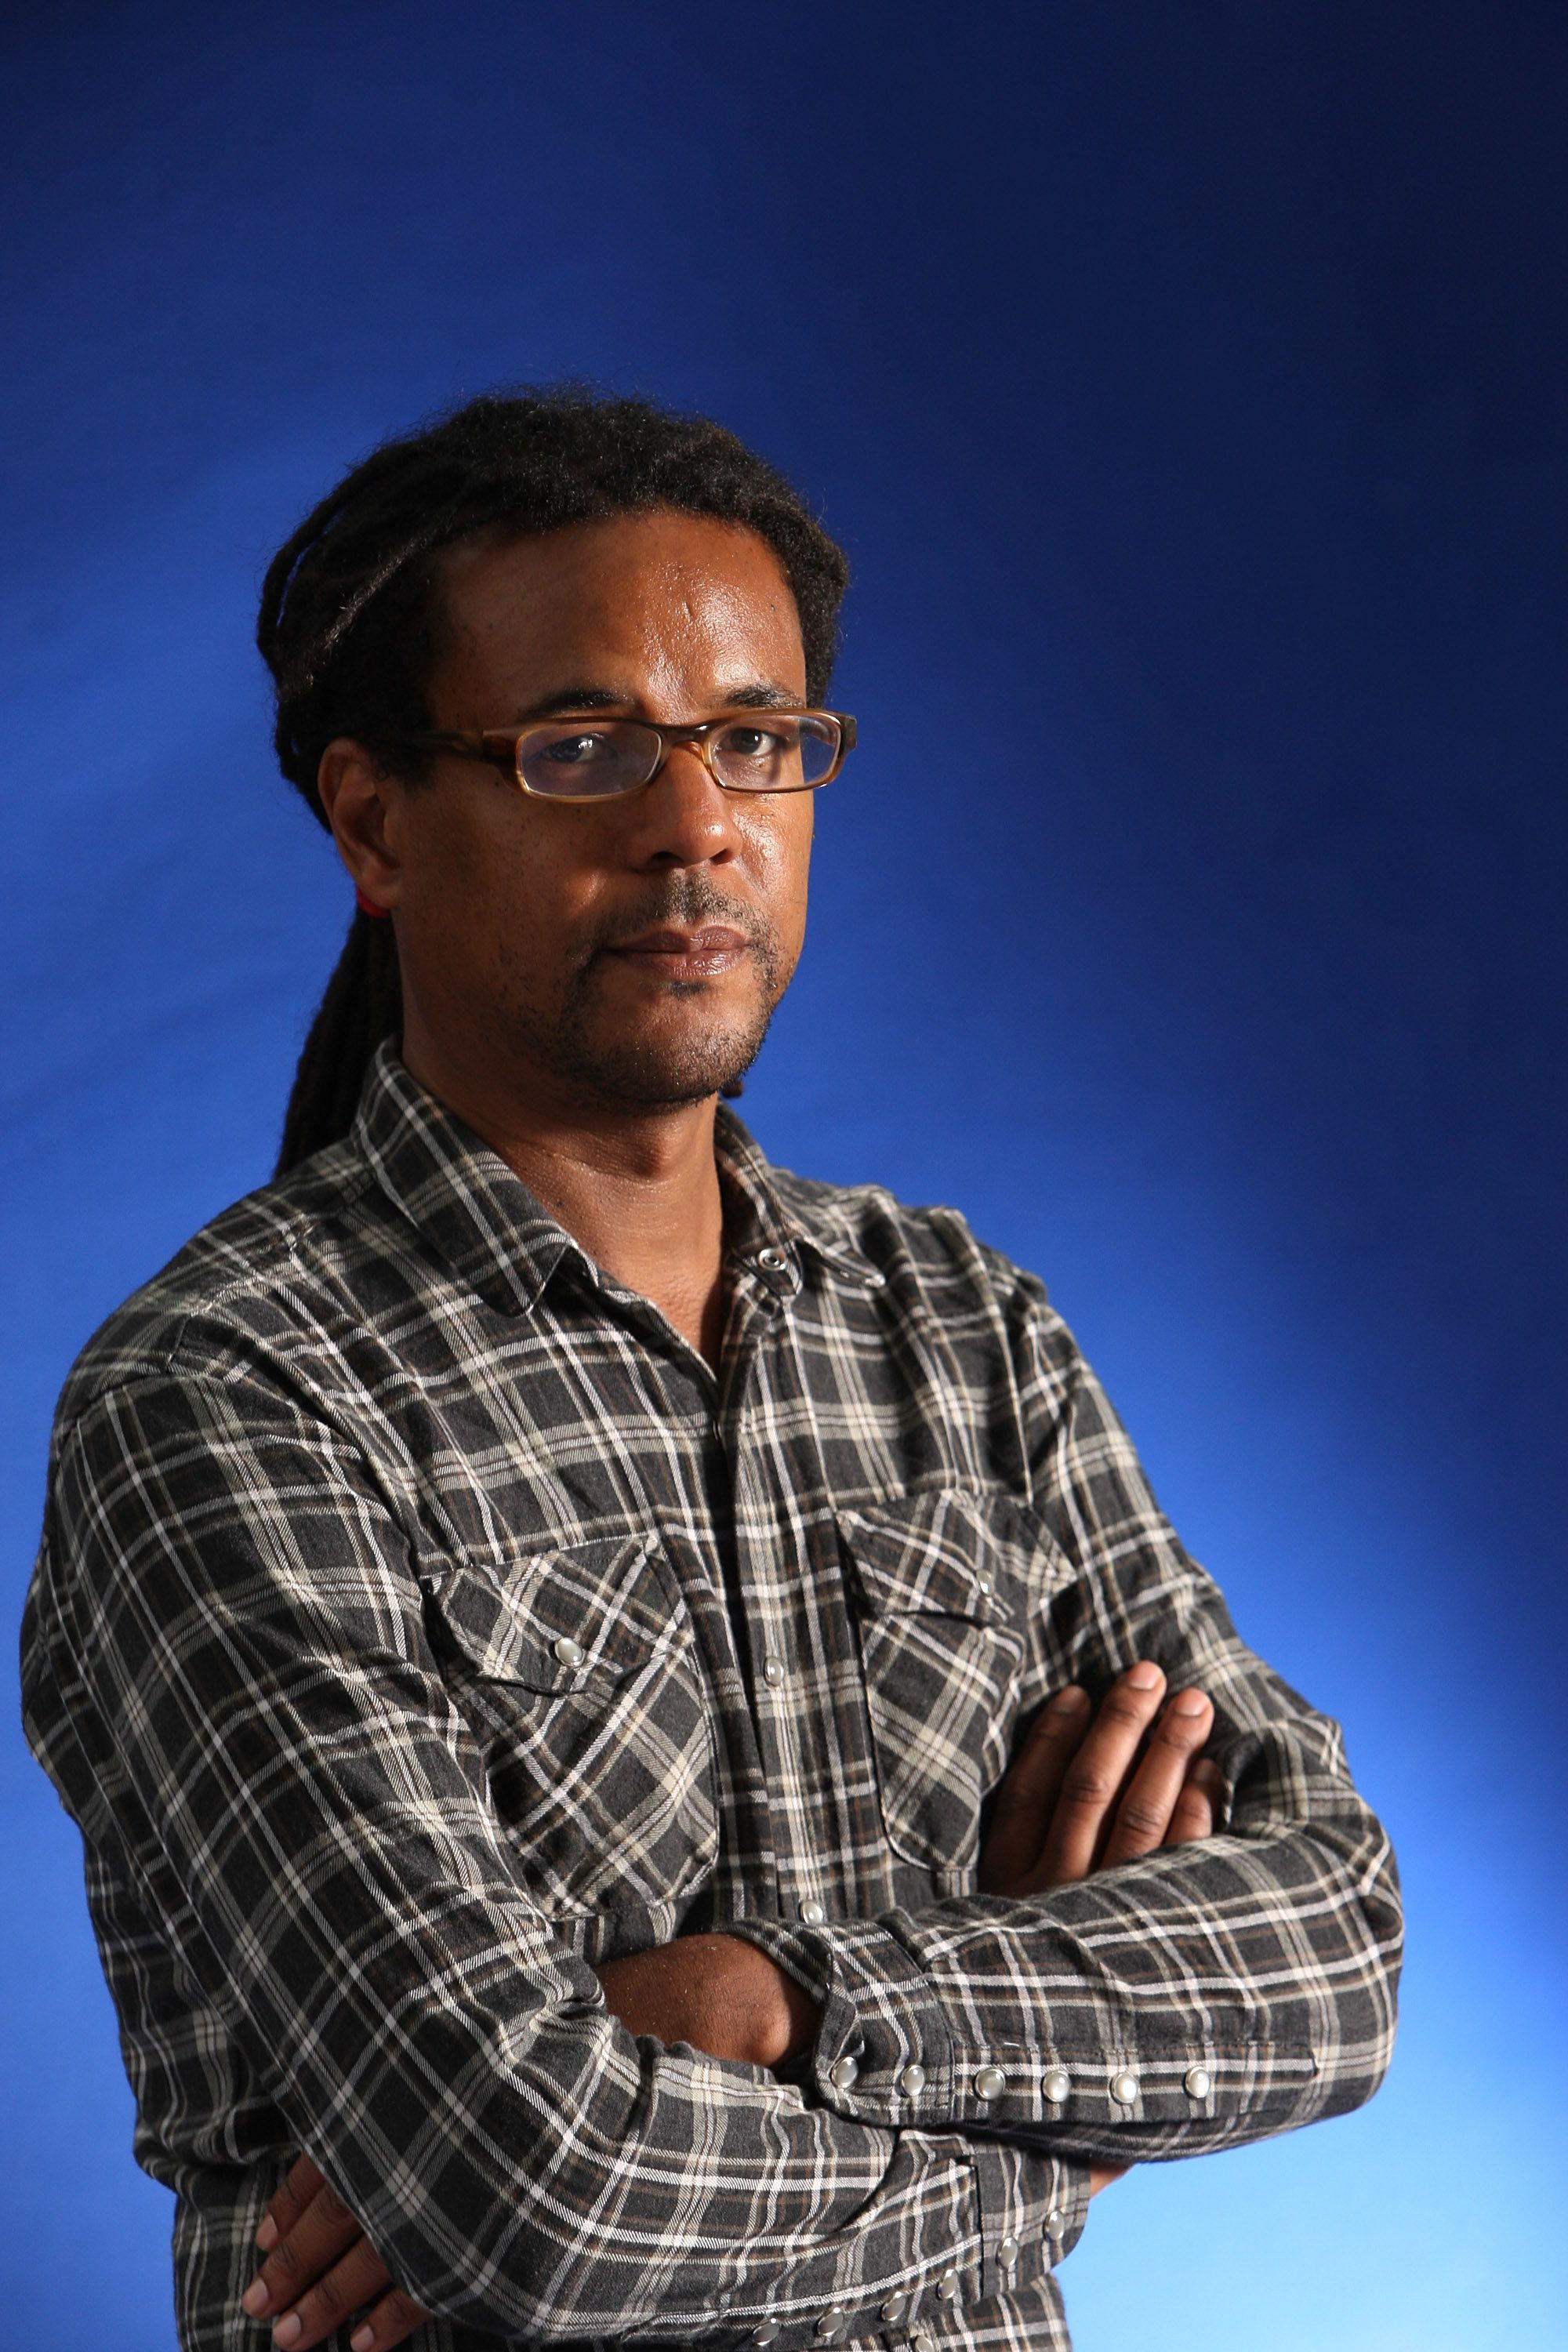 EDINBURGH, SCOTLAND - AUGUST 12:  Colson Whitehead, American essayist and author of horror novel 'Zone One', appears at a photocall prior to participating in the Edinburgh International Book Festival 2012 on August 12, 2012 in Edinburgh, Scotland. Edinburgh is the world's first UNESCO City of Literature, and this year approximately 800 authors will participate in the literary festival.  (Photo by Jeremy Sutton-Hibbert/Getty Images)